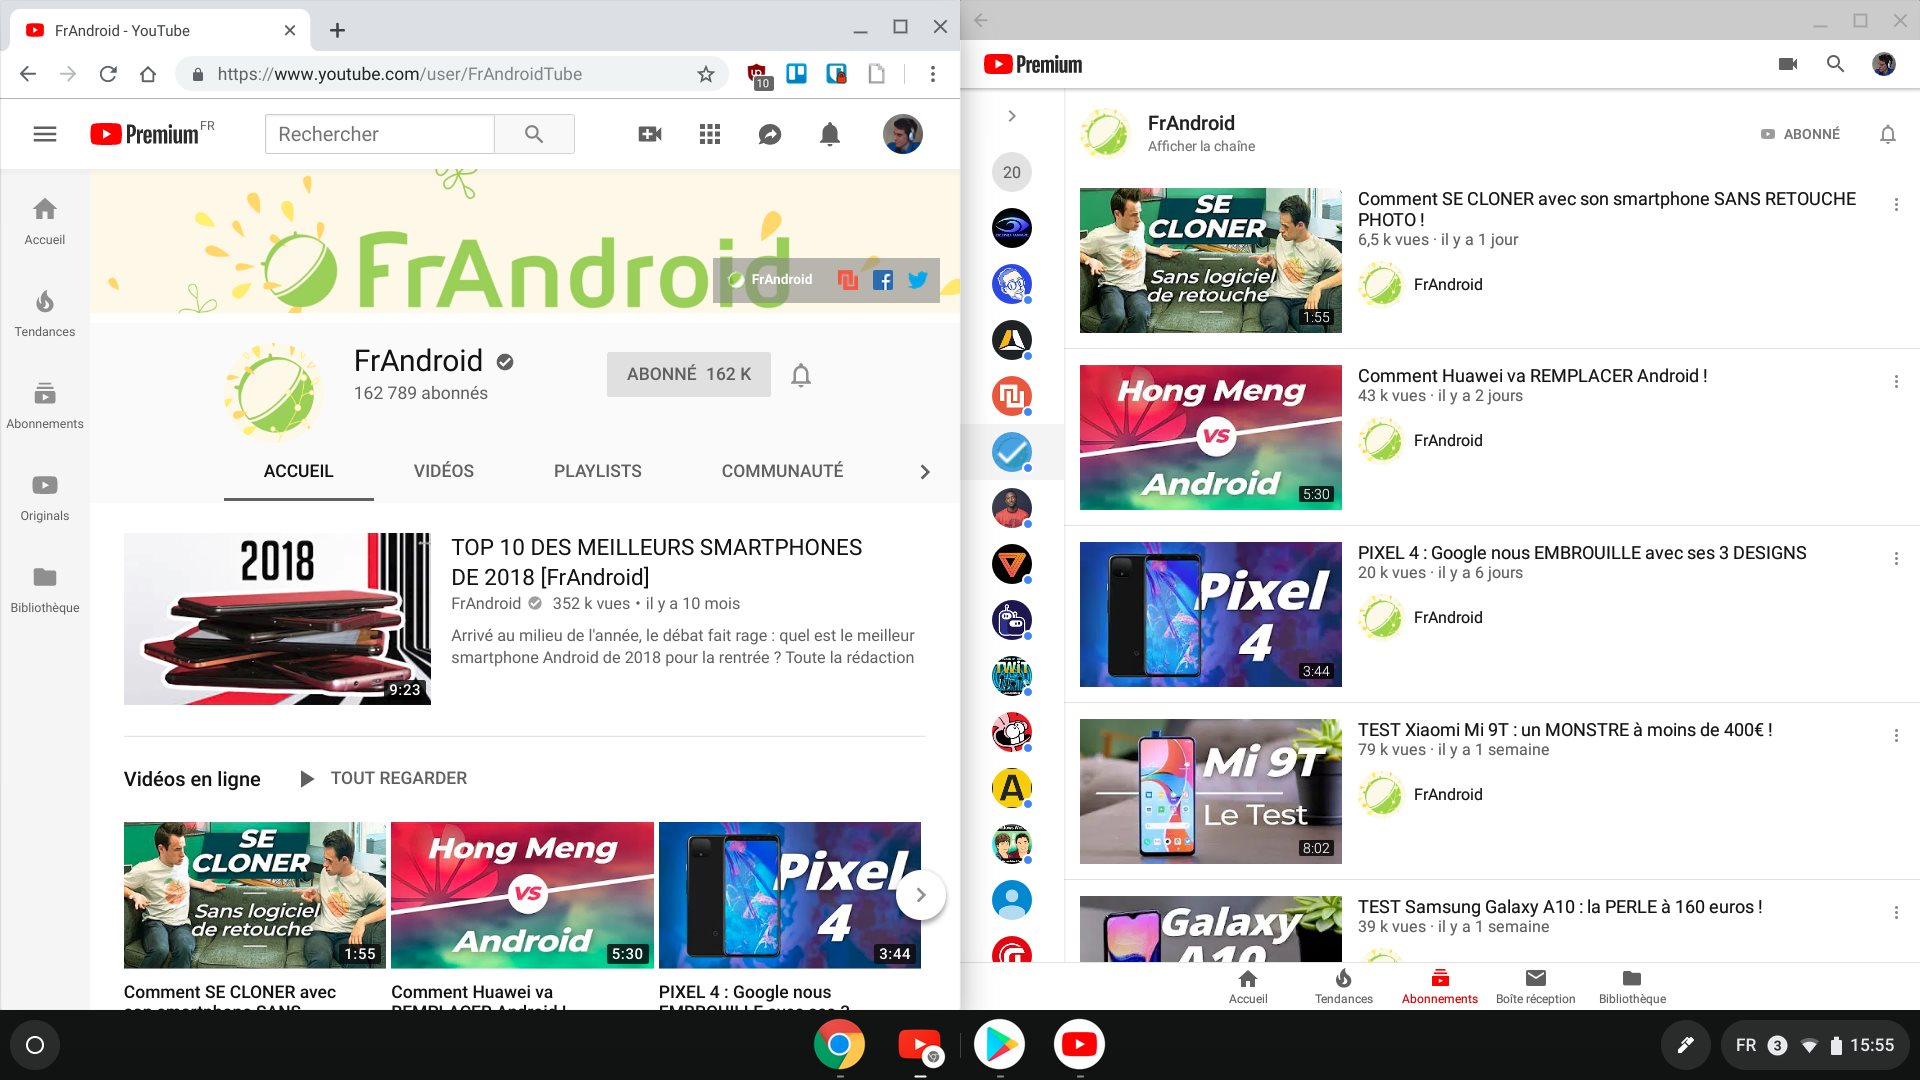 L'application Chrome OS YouTube et l'application Android